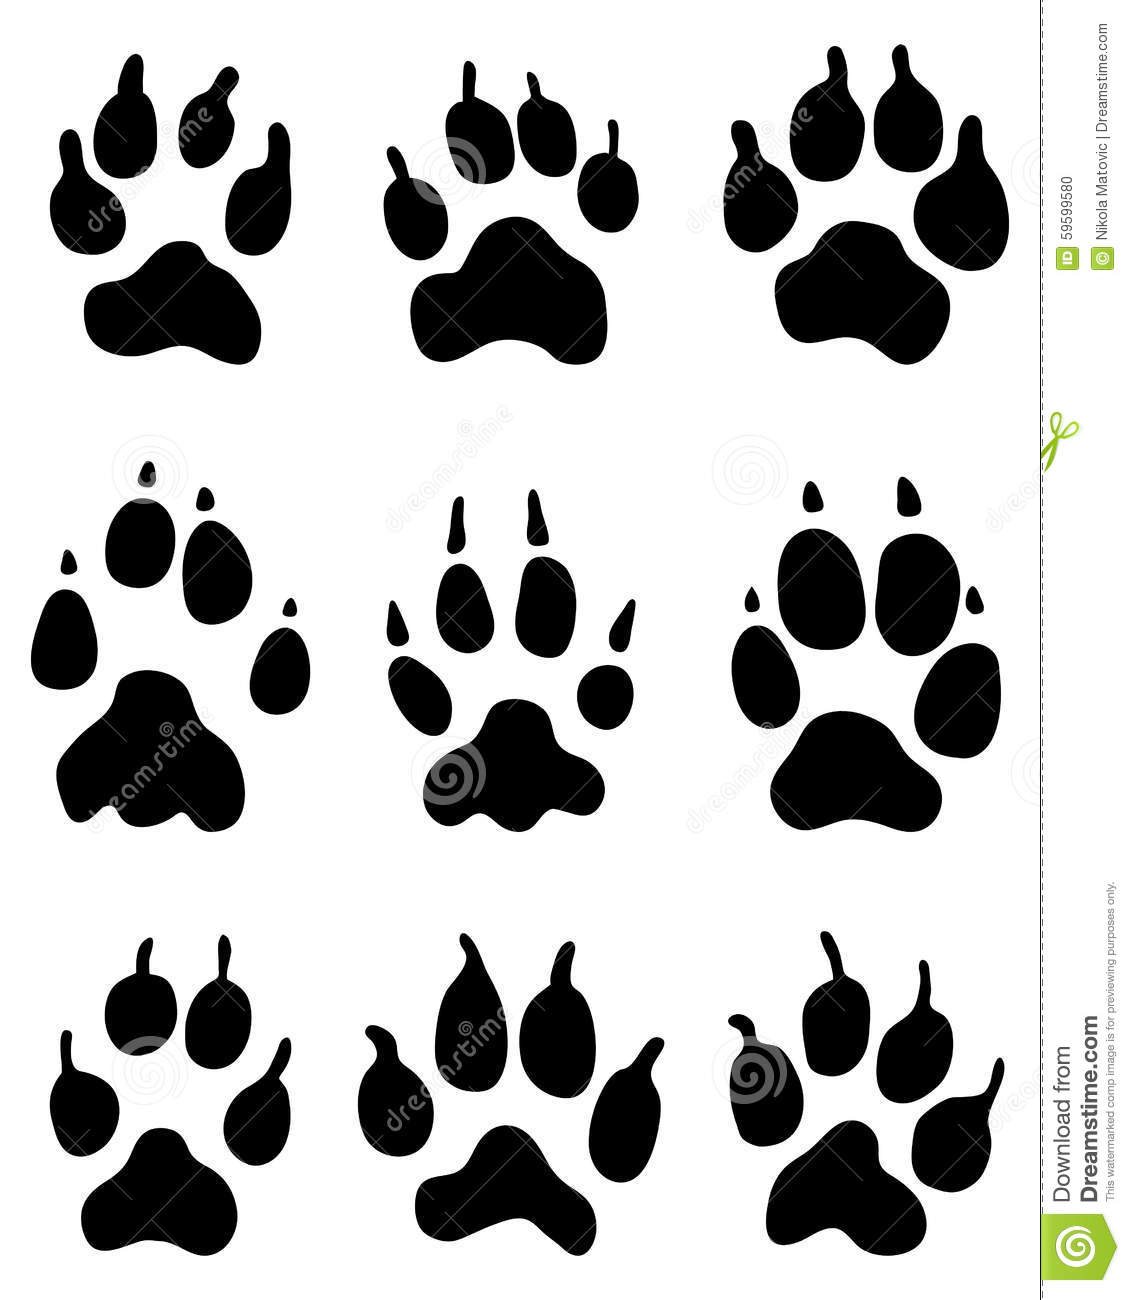 Wolf Paw Stock Illustration - Image: 59599580